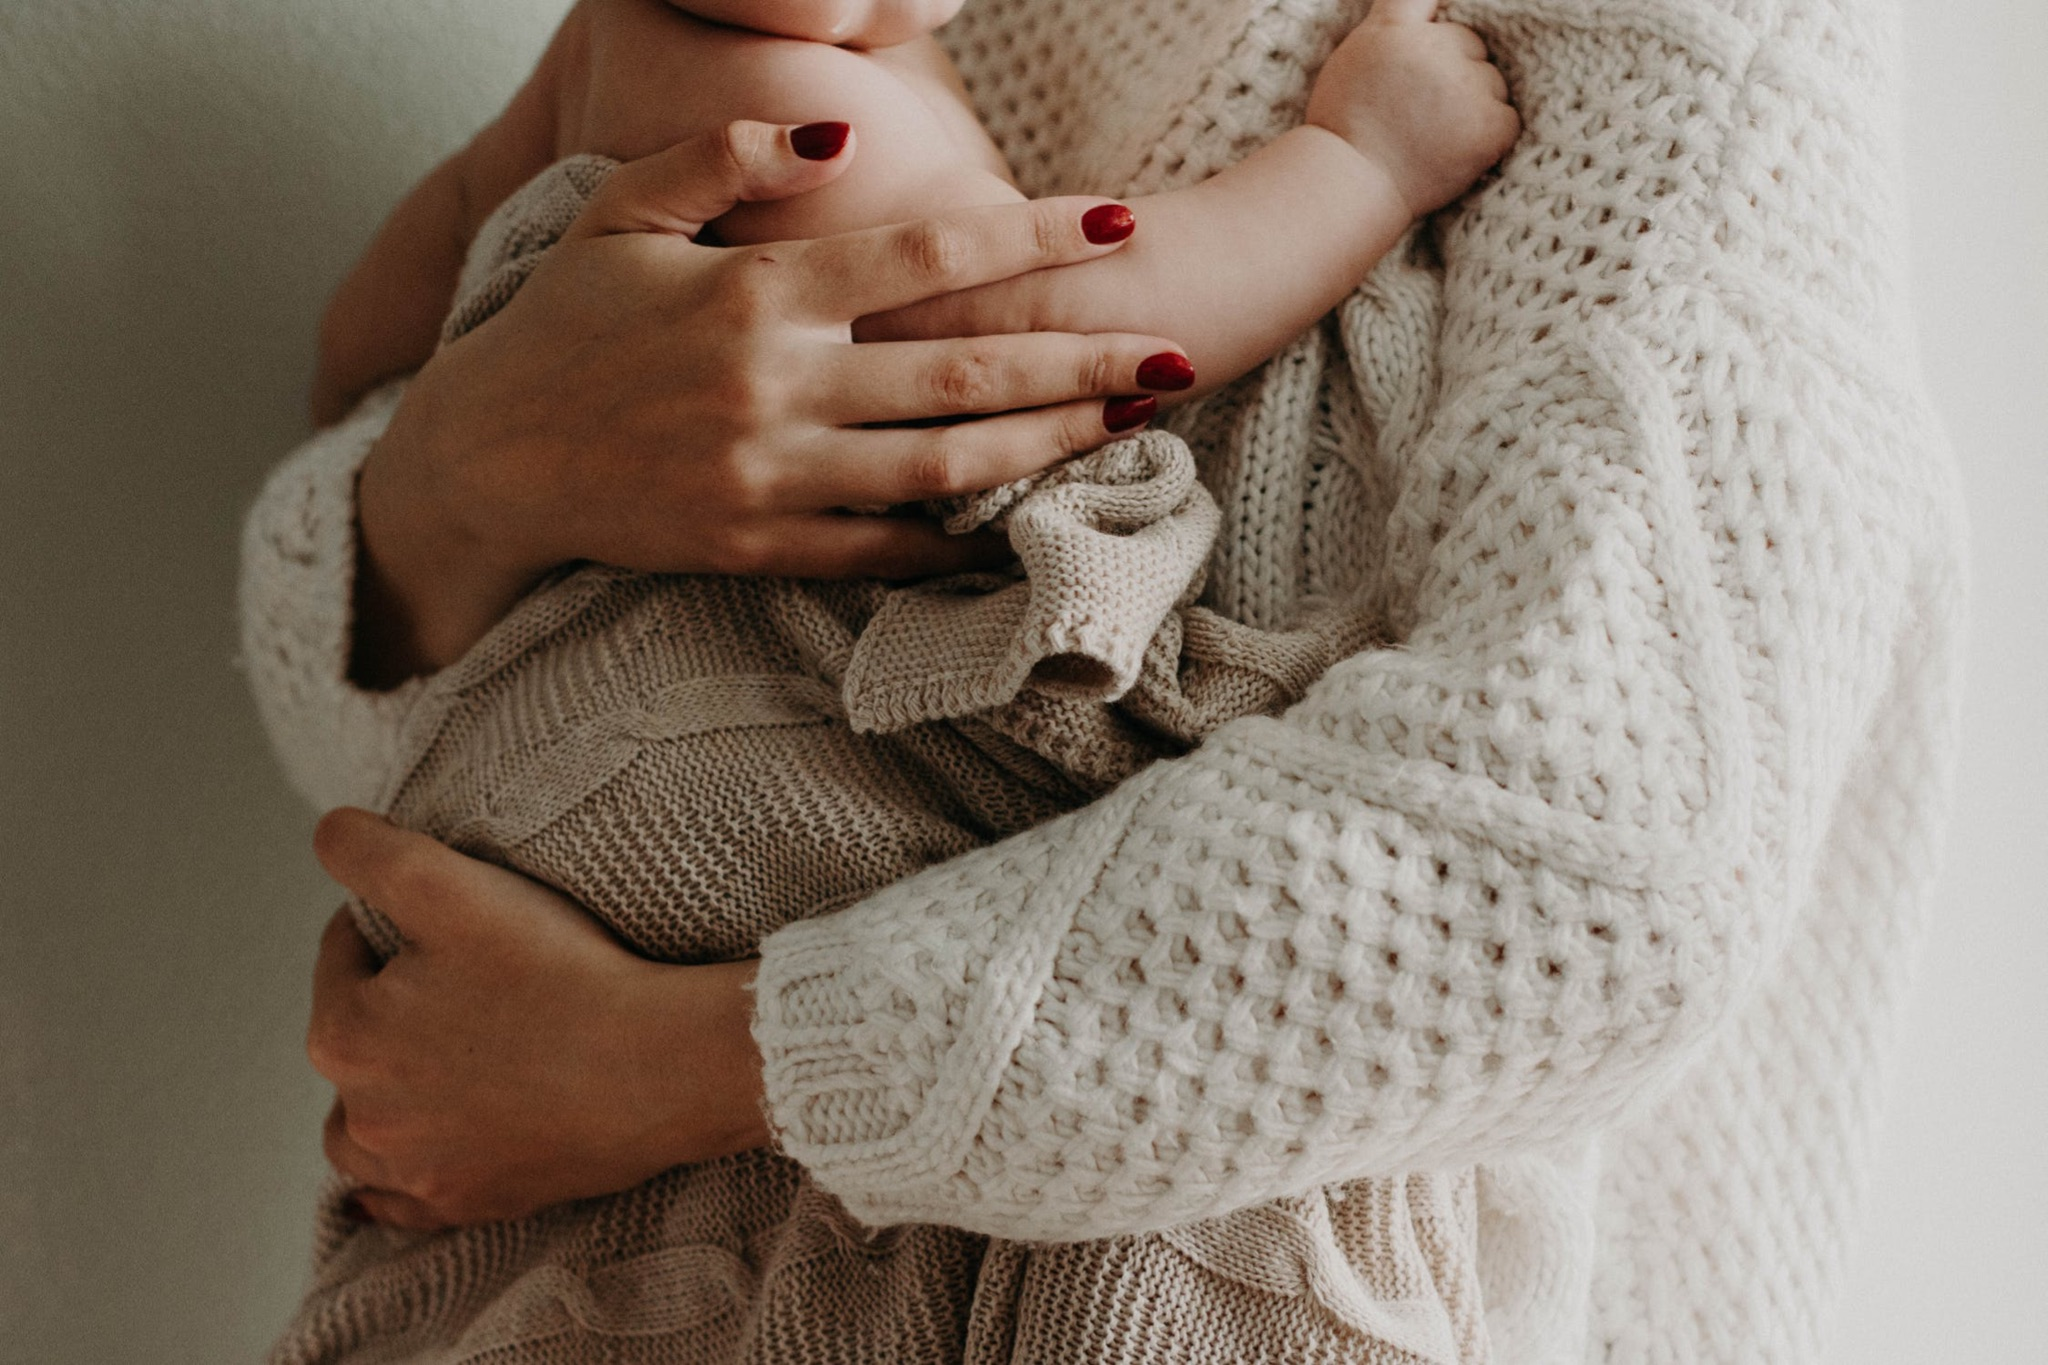 getting ready to meet your little one? here is how to make the most of your maternity leave